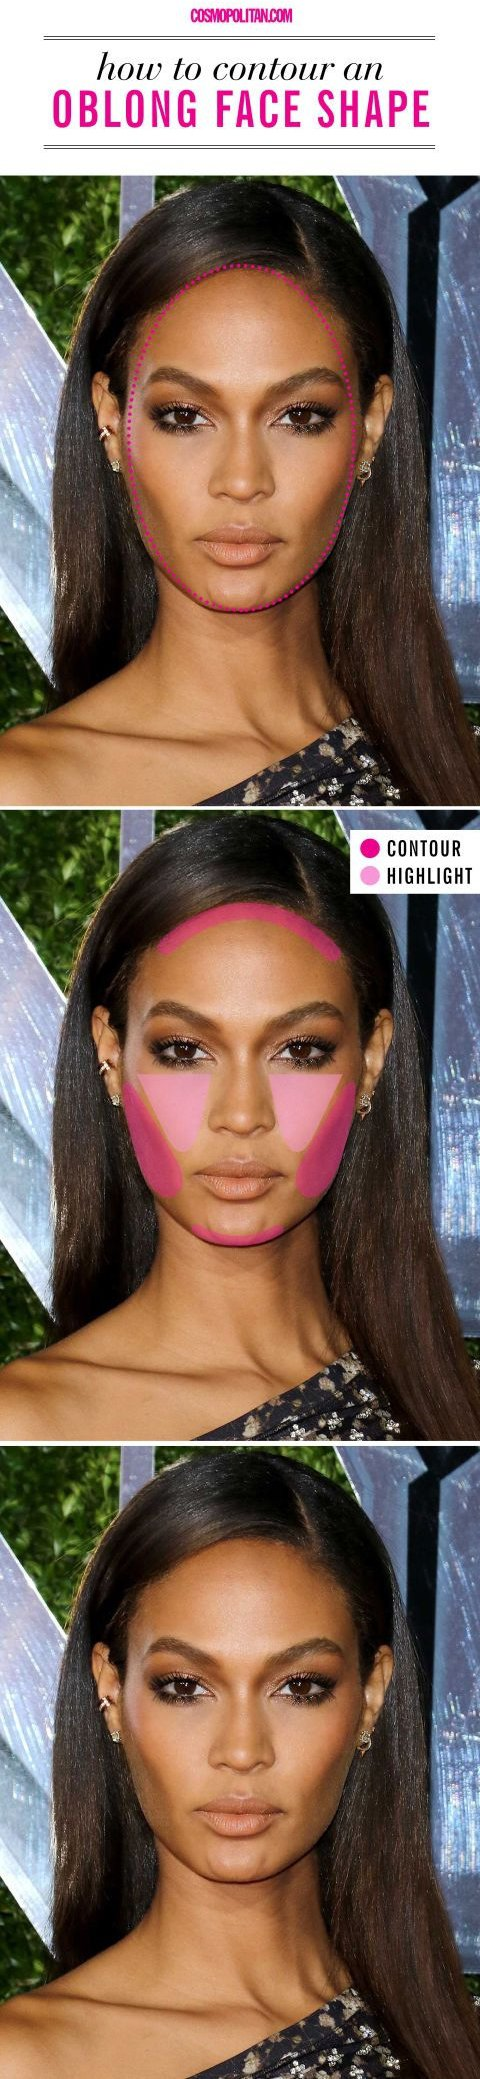 How To Contour If You Have An Oblong Face Shape